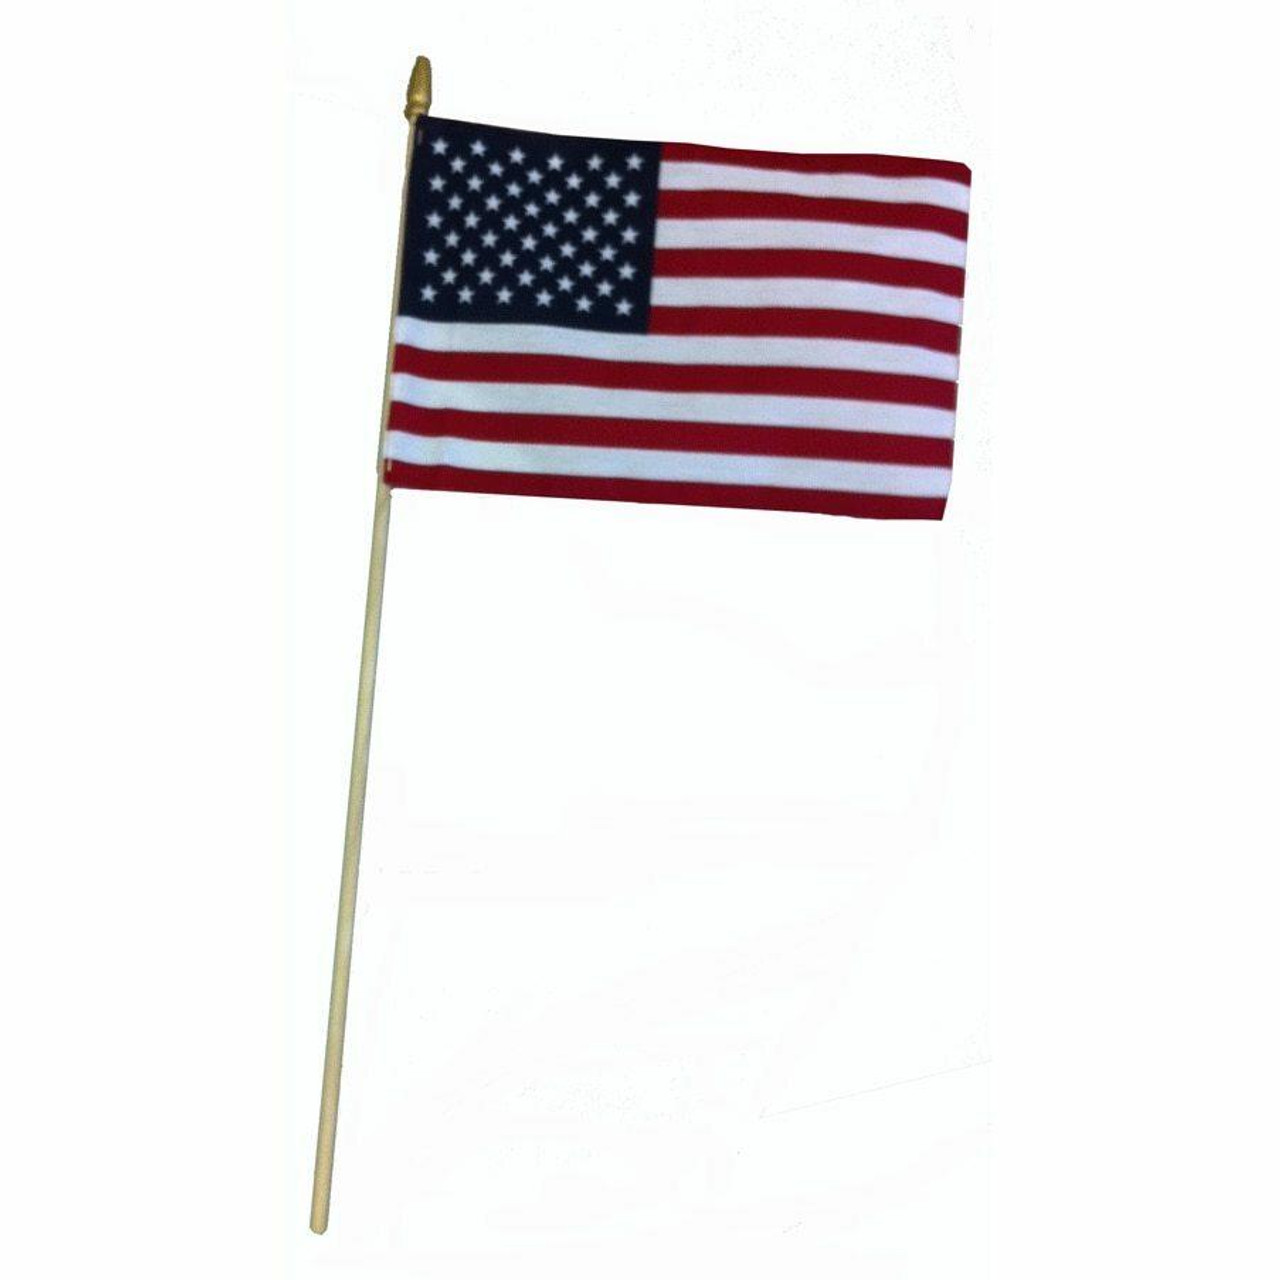 A small American flag stapled to a wooden staff with a gold-painted spear at the top of the staff. The flag is a rectangle with a smaller dark blue rectangle in the top left corner with 50 small white stars printed throughout. The rest of the larger rectangle has 13 stripes that alternate between red and white, starting with a red stripe. The staff is made of a natural wood that is light in color, with a wooden spear adorned to the top and painted gold.